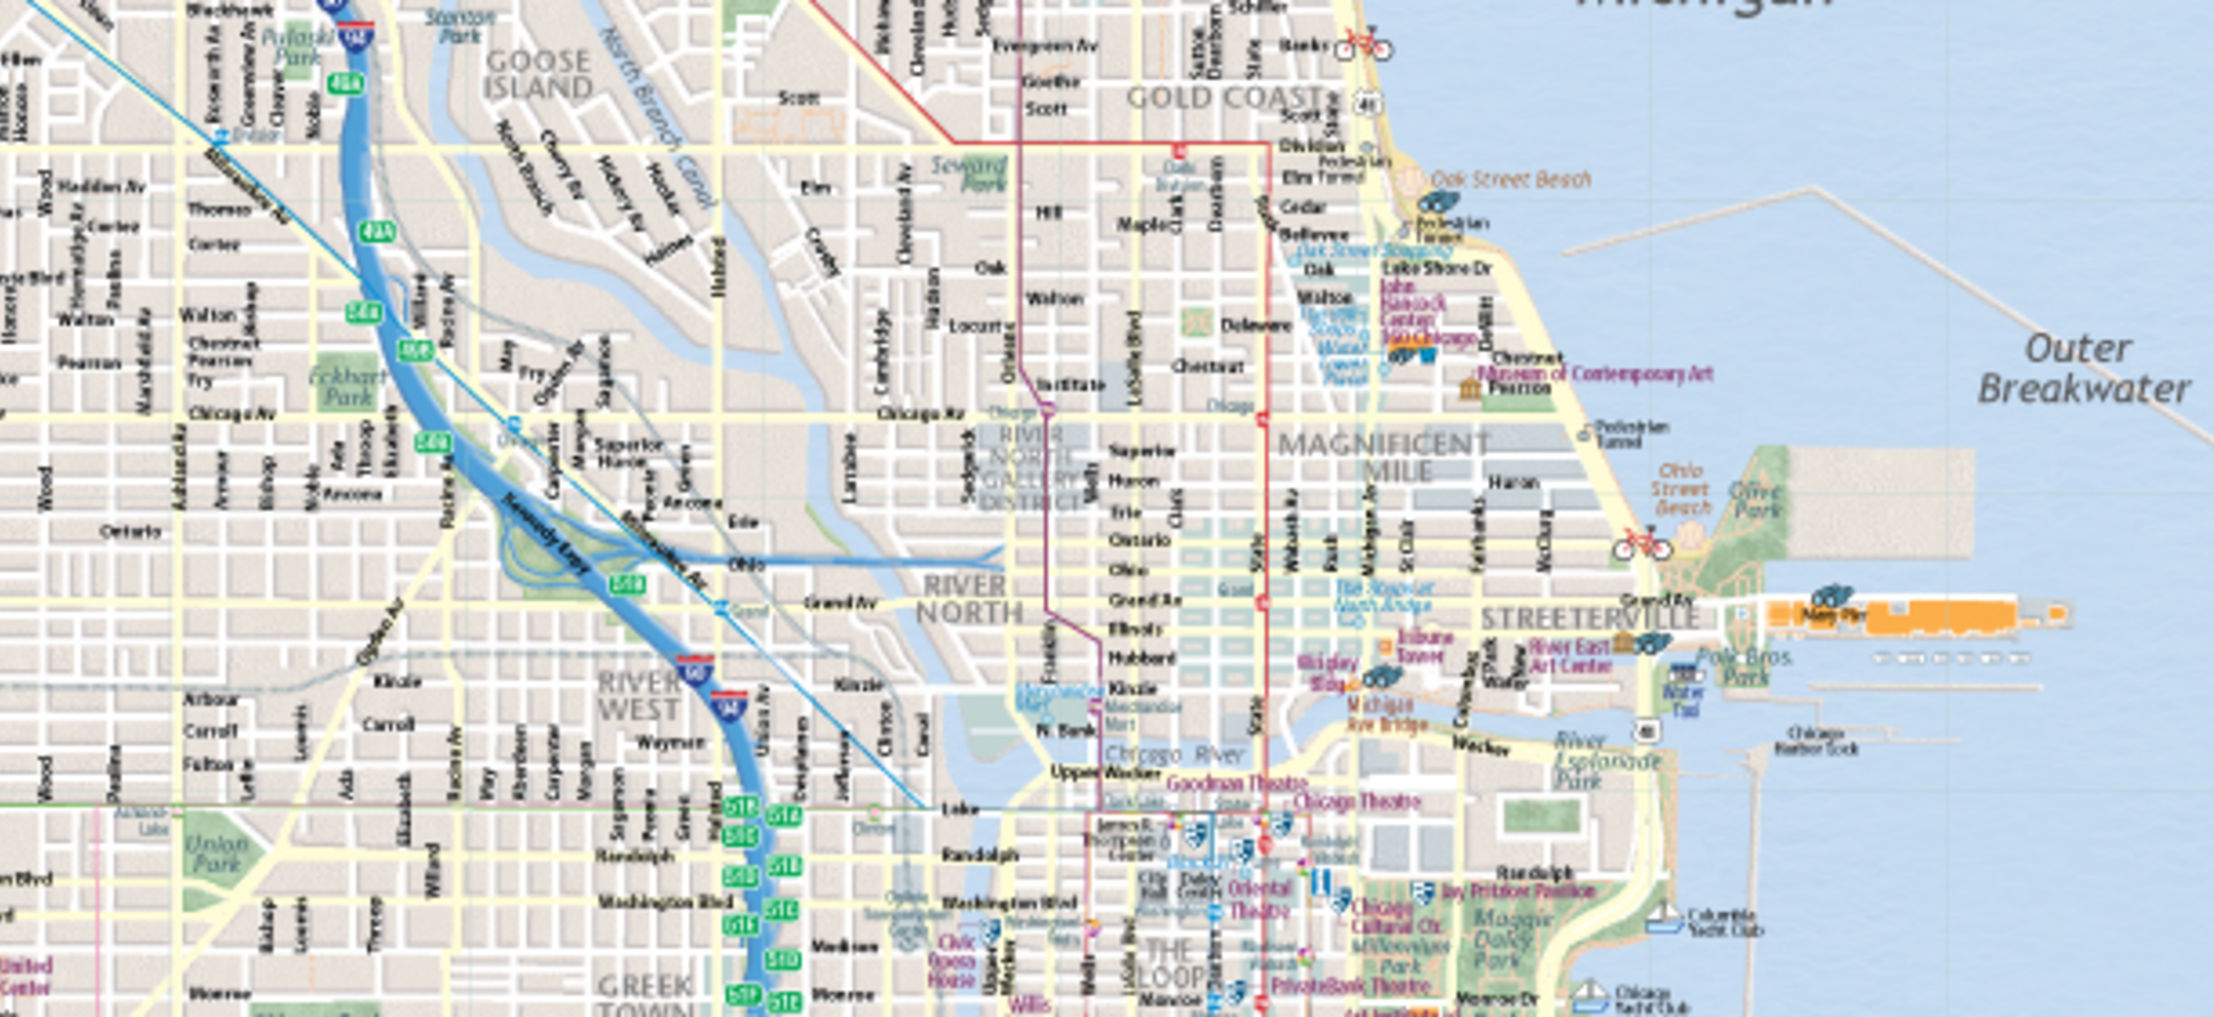 Nifty image within printable street map of downtown chicago